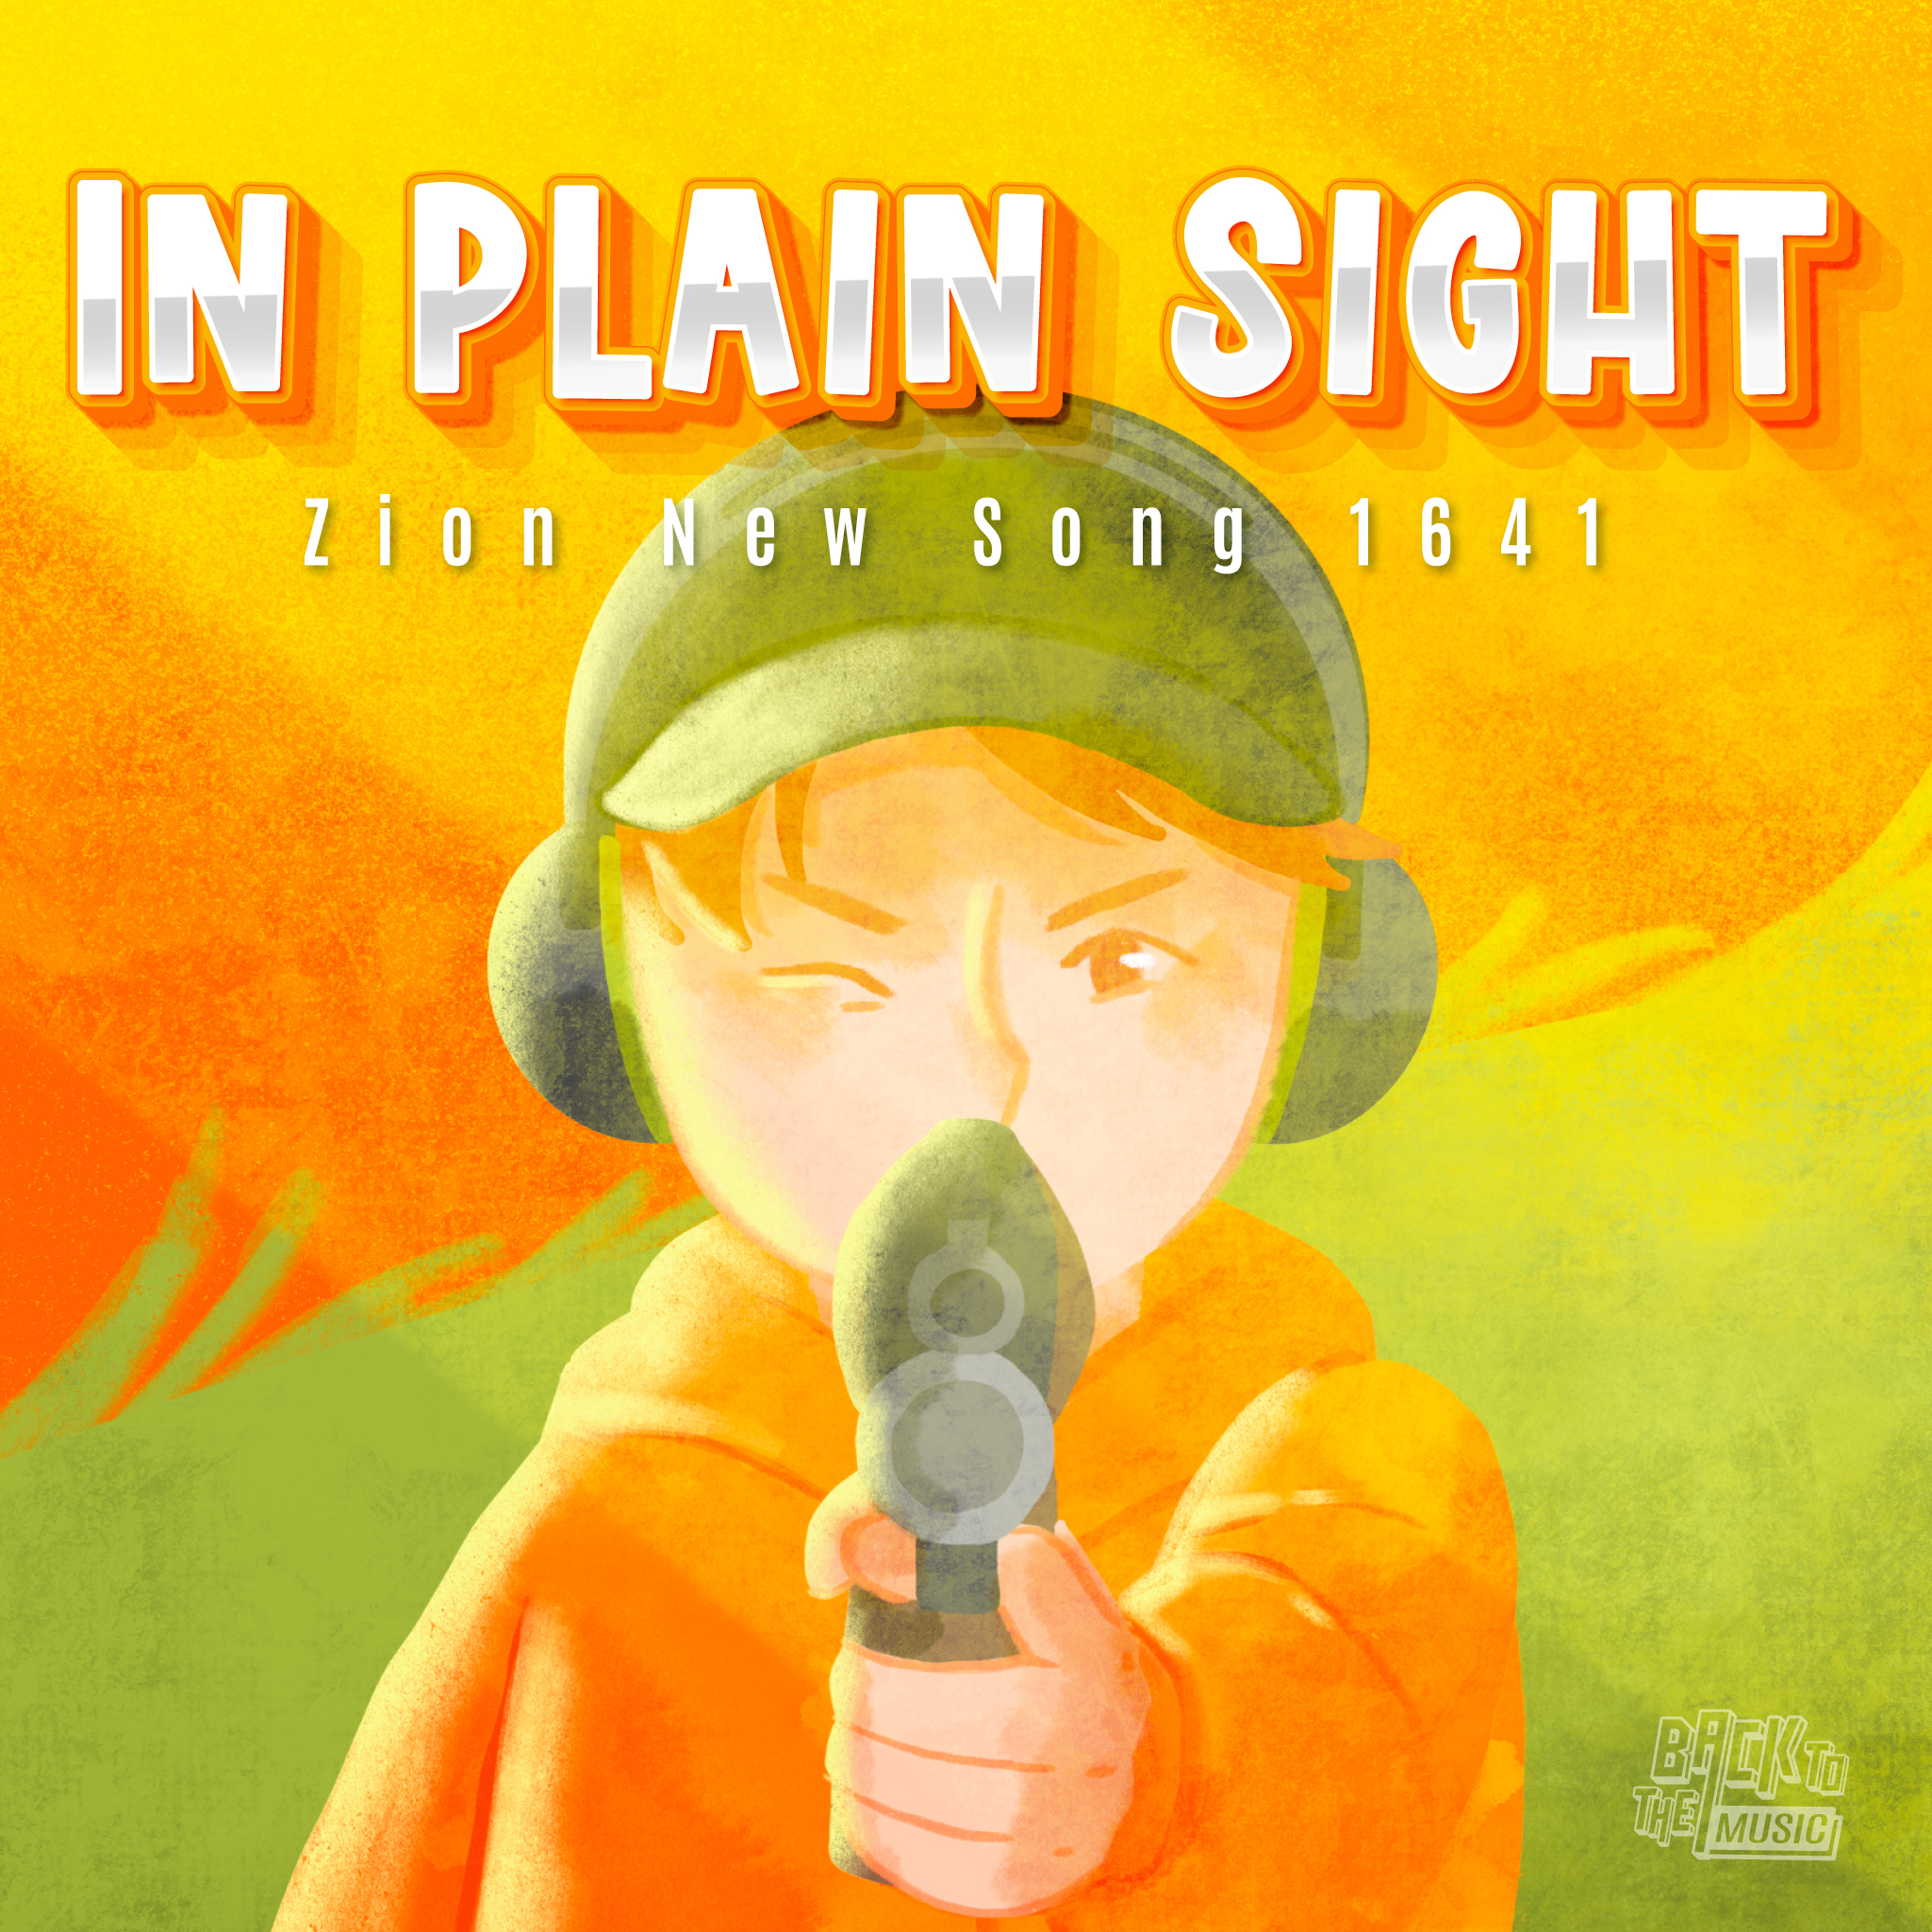 【In plain sight】   Music   Praise the Lord 2021   Back To The Music   432Hz